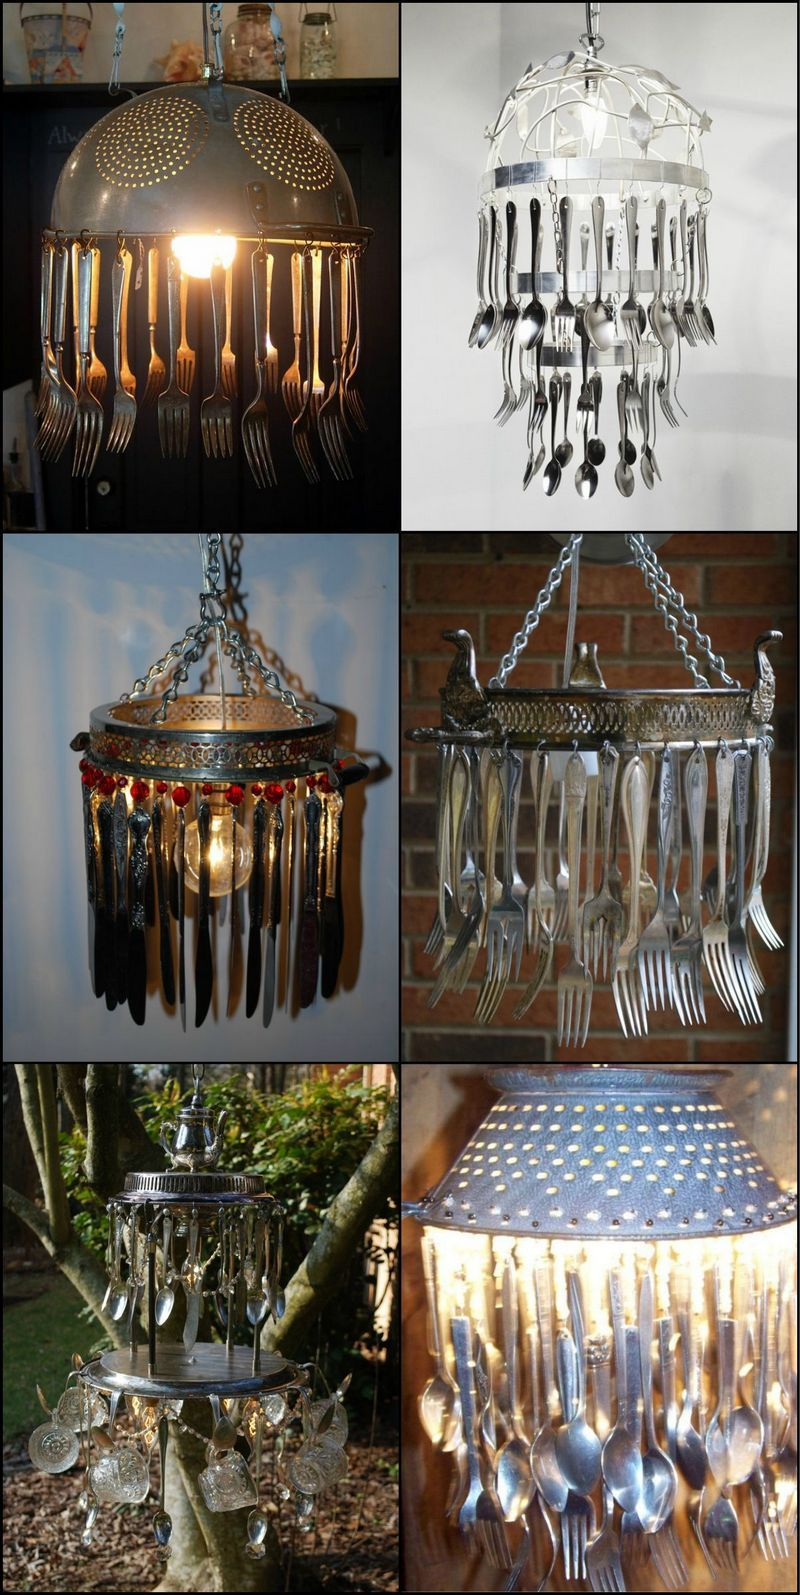 Original ideas on what to do with old kitchen utensils